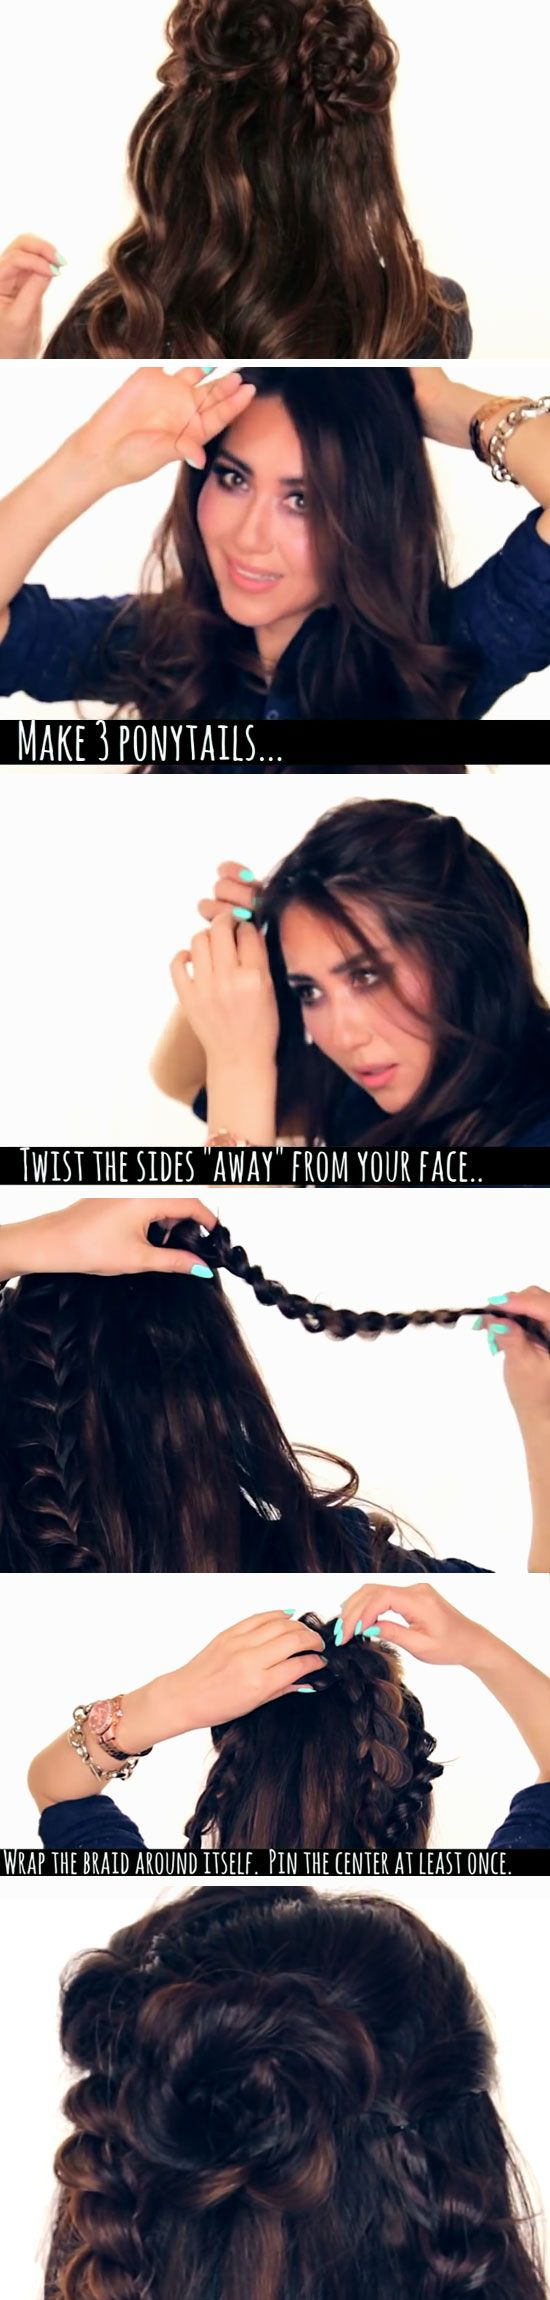 Christina ferrare hairstyle products used - 15 Easy Diy Prom Hairstyles For Medium Hair